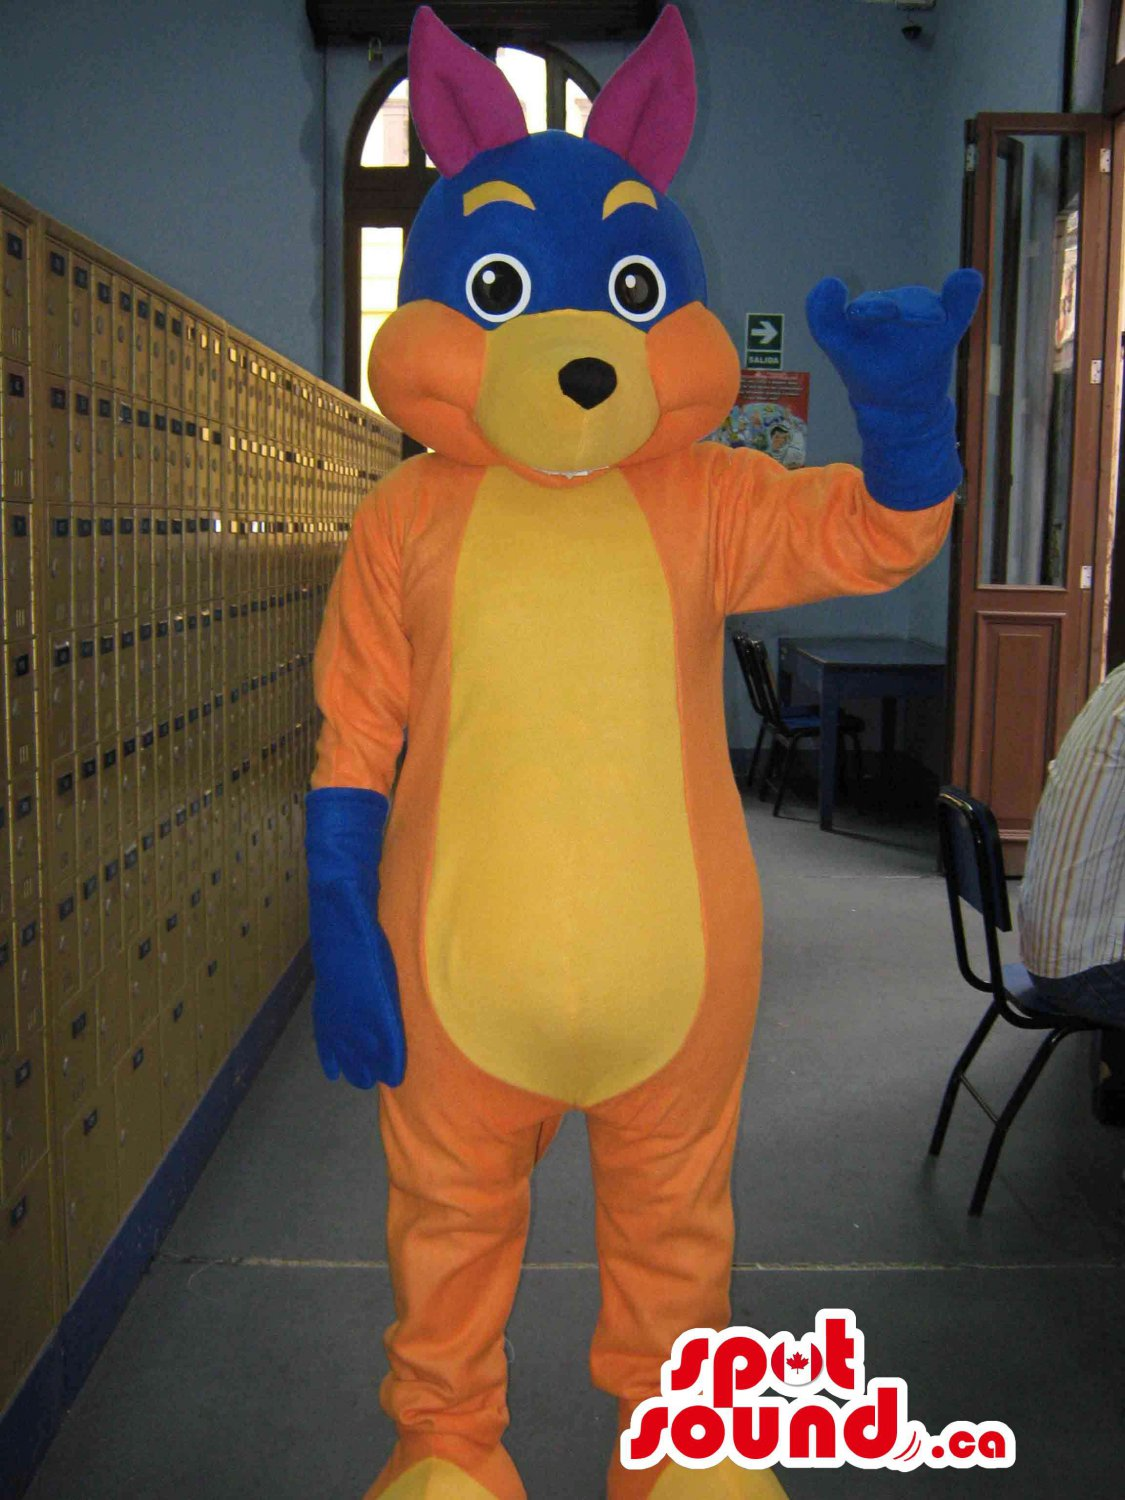 Rabbit Mascot SpotSound Canada With Several Colors Combined And Matching Gloves